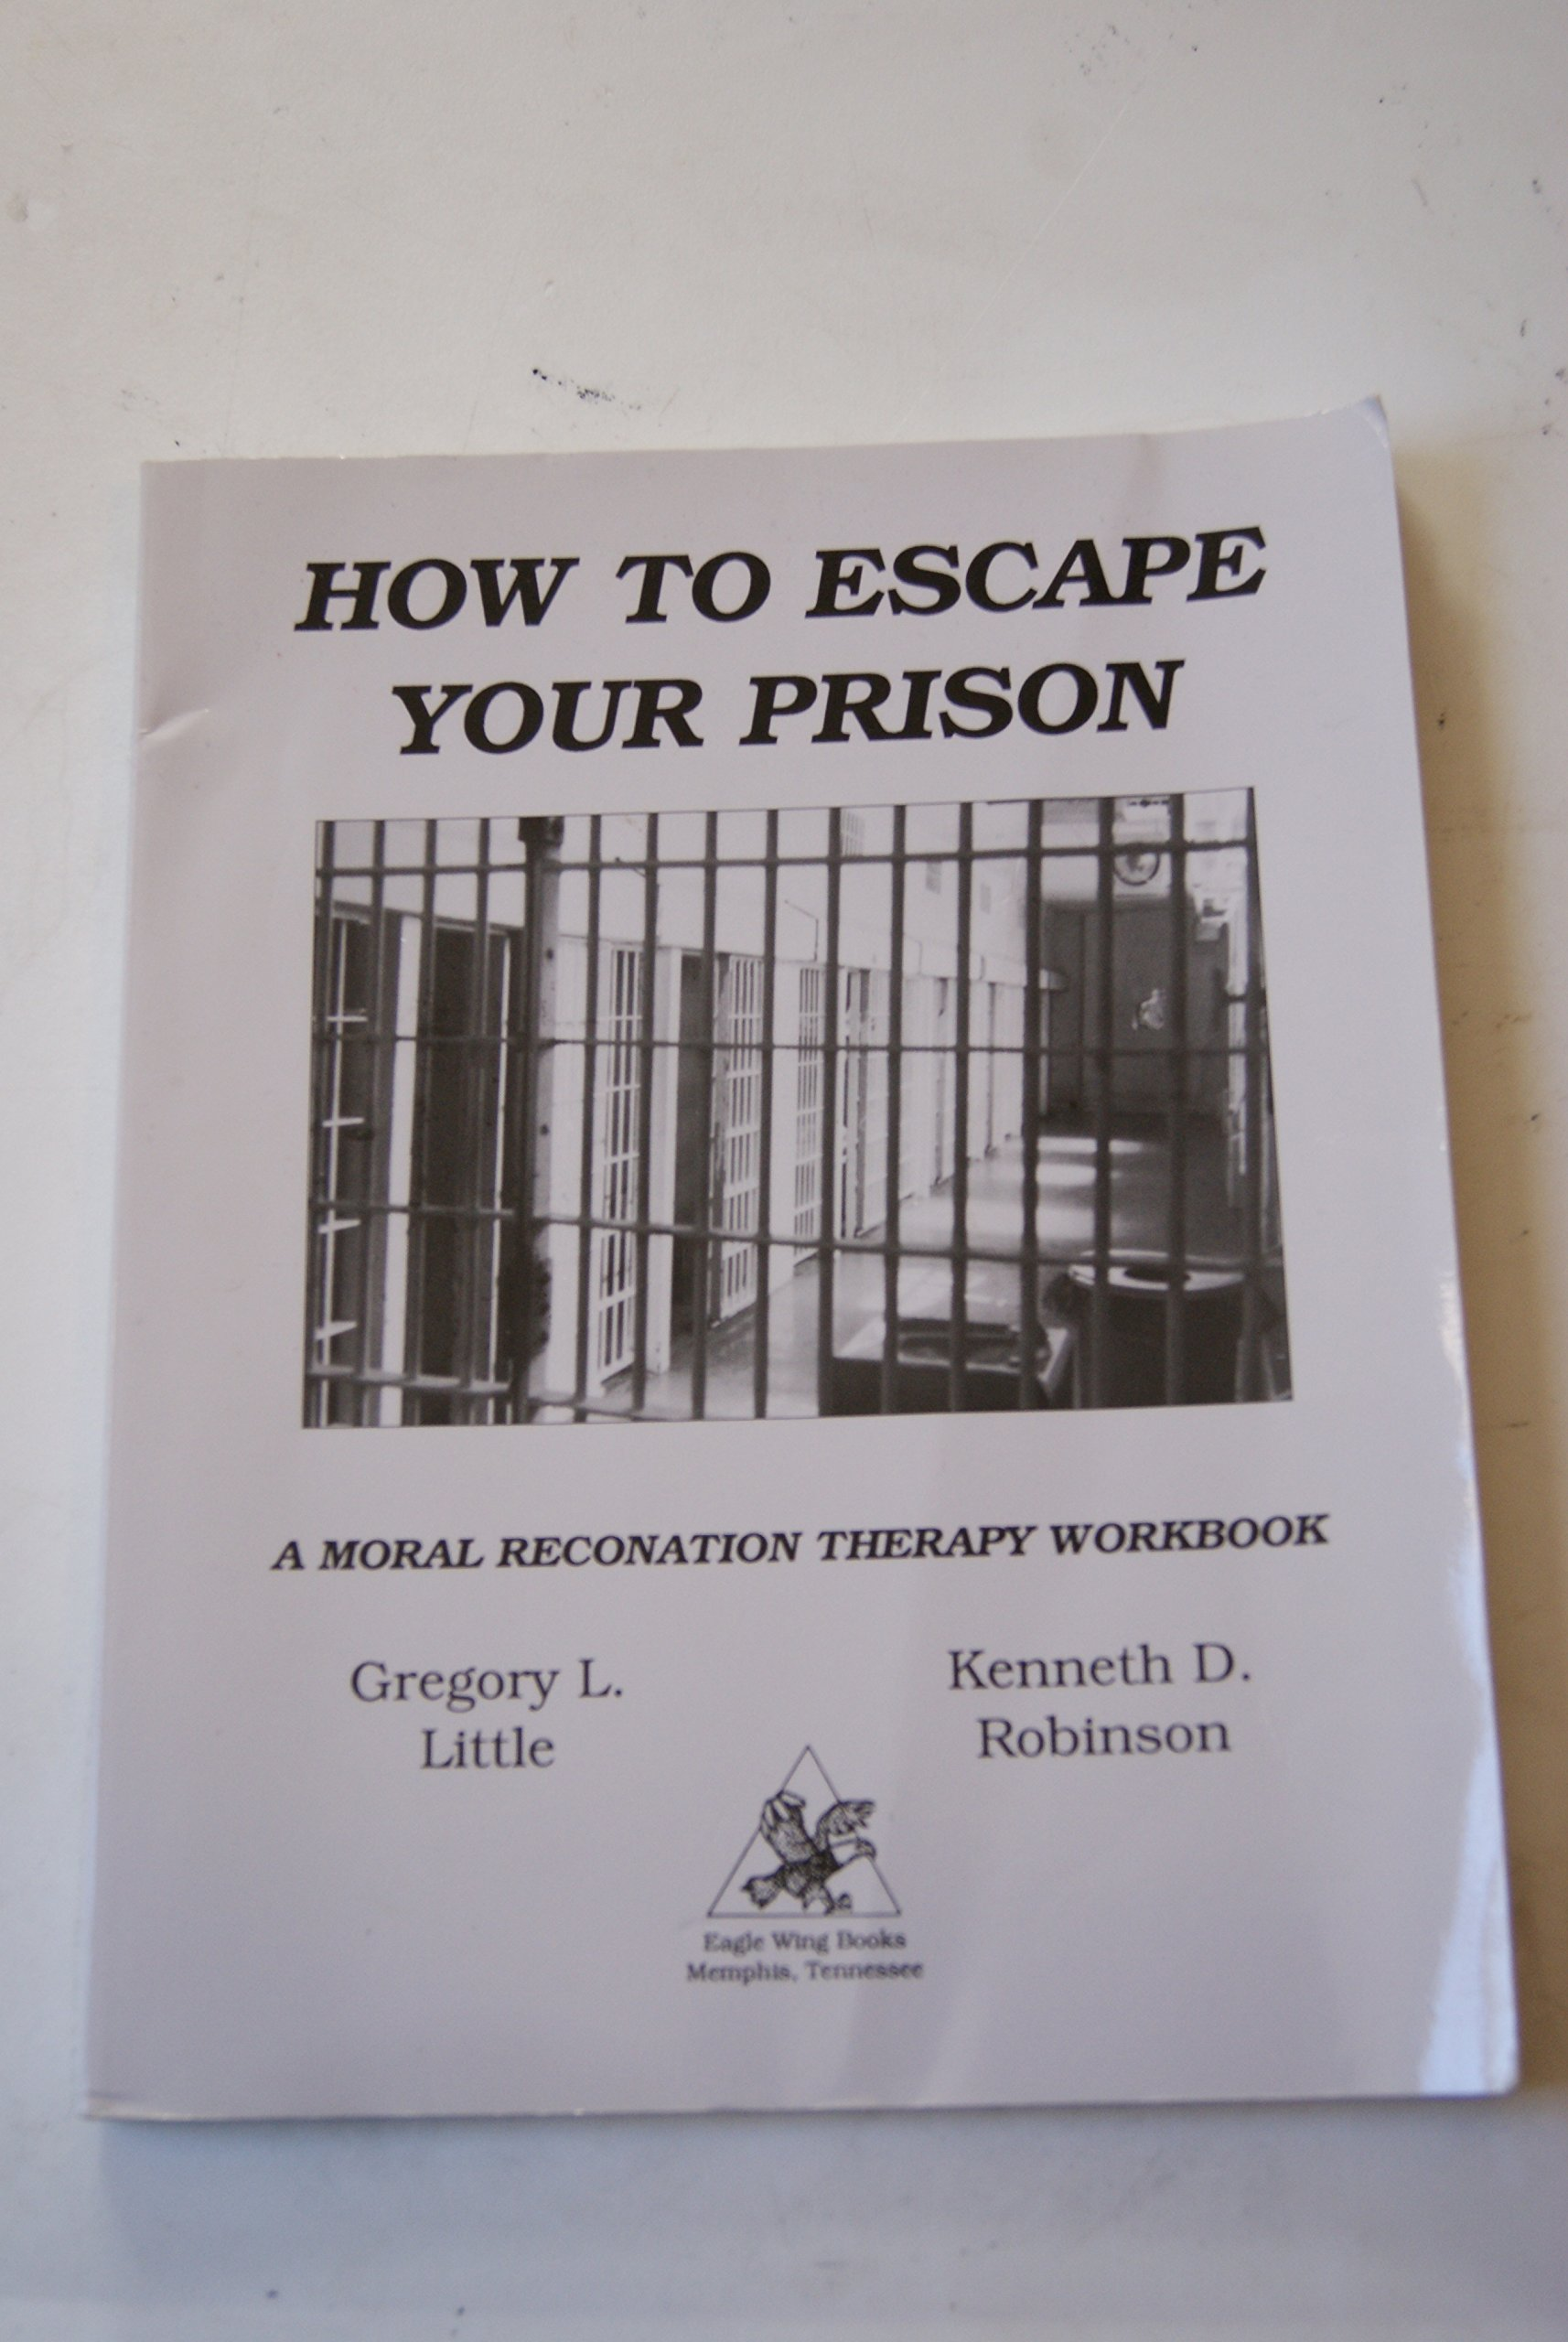 How to Escape Your Prison: A Moral Reconation Therapy